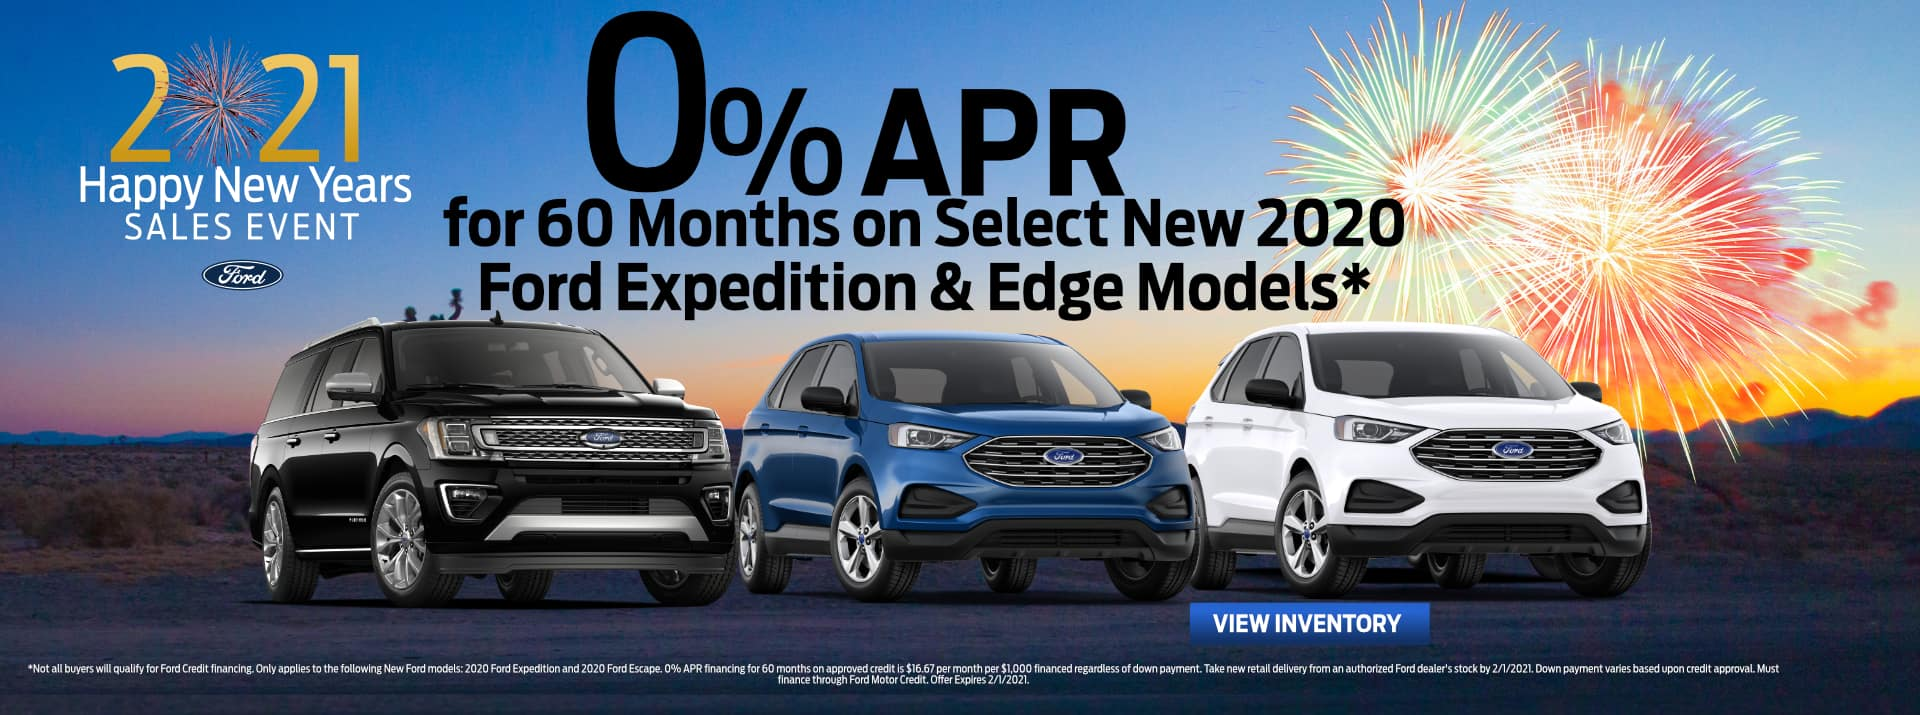 January-2021 Ford Expedition&Edge GENERAL FIESTA FORD